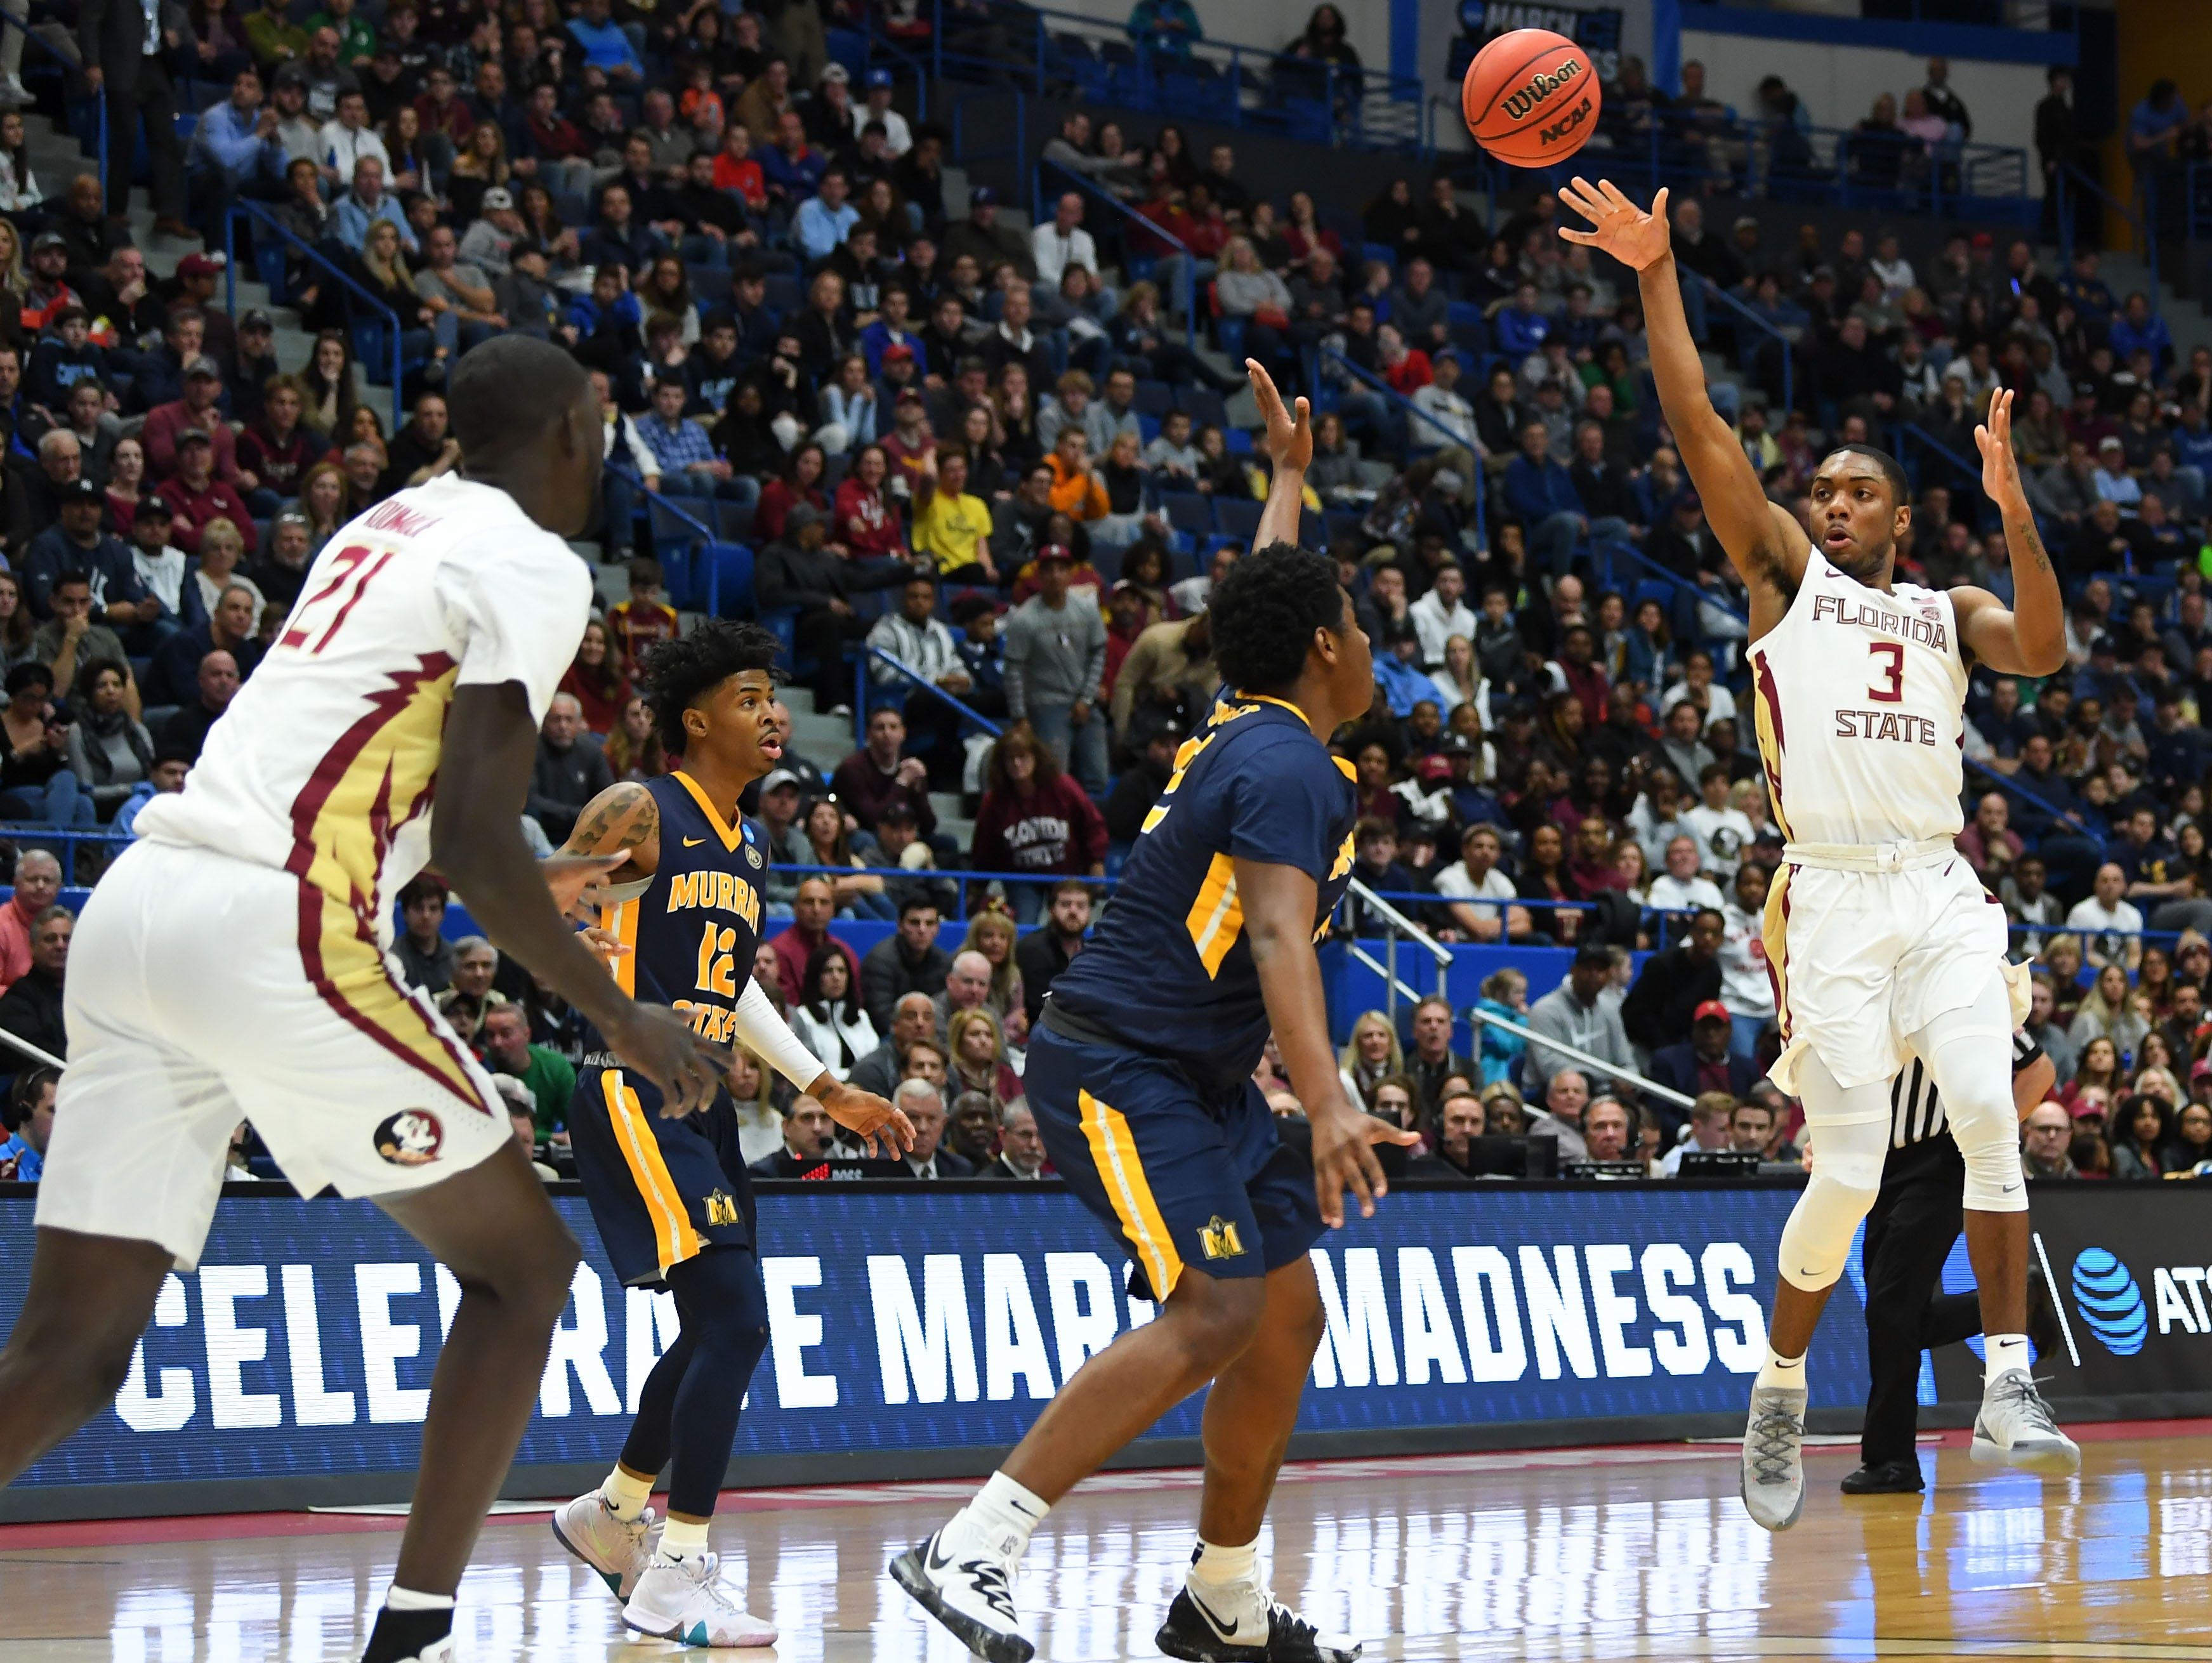 Mar 23, 2019; Hartford, CT, USA; Florida State Seminoles guard Trent Forrest (3) passes the ball against the Murray State Racers during the first half of a game in the second round of the 2019 NCAA Tournament at XL Center. Mandatory Credit: Robert Deutsch-USA TODAY Sports